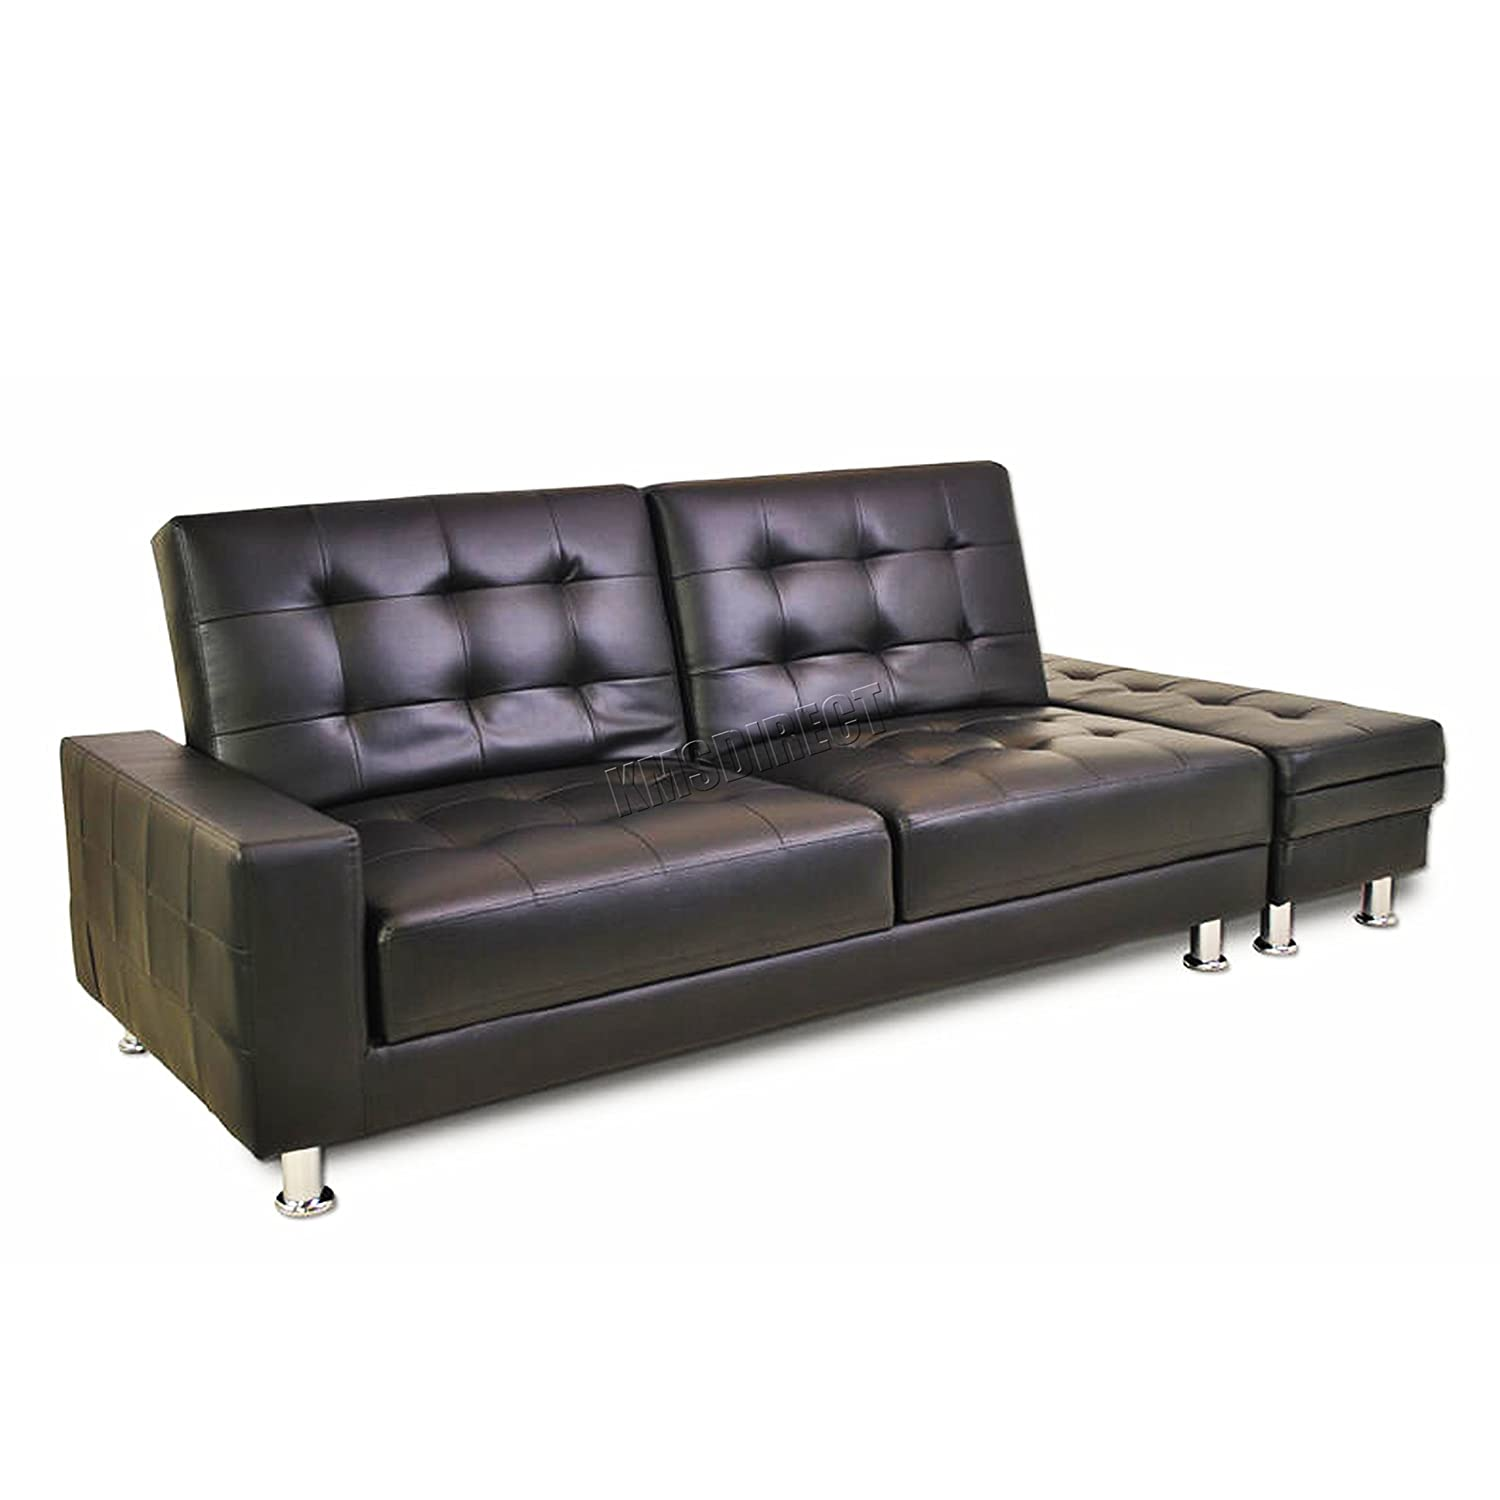 Superb Westwood Modern Design Pu Sofa Bed With Storage 3 Seater Guest Sleeper Convertible Ottoman Foot Stool Chaise Longue Livingroom Home Furniture Faux Camellatalisay Diy Chair Ideas Camellatalisaycom